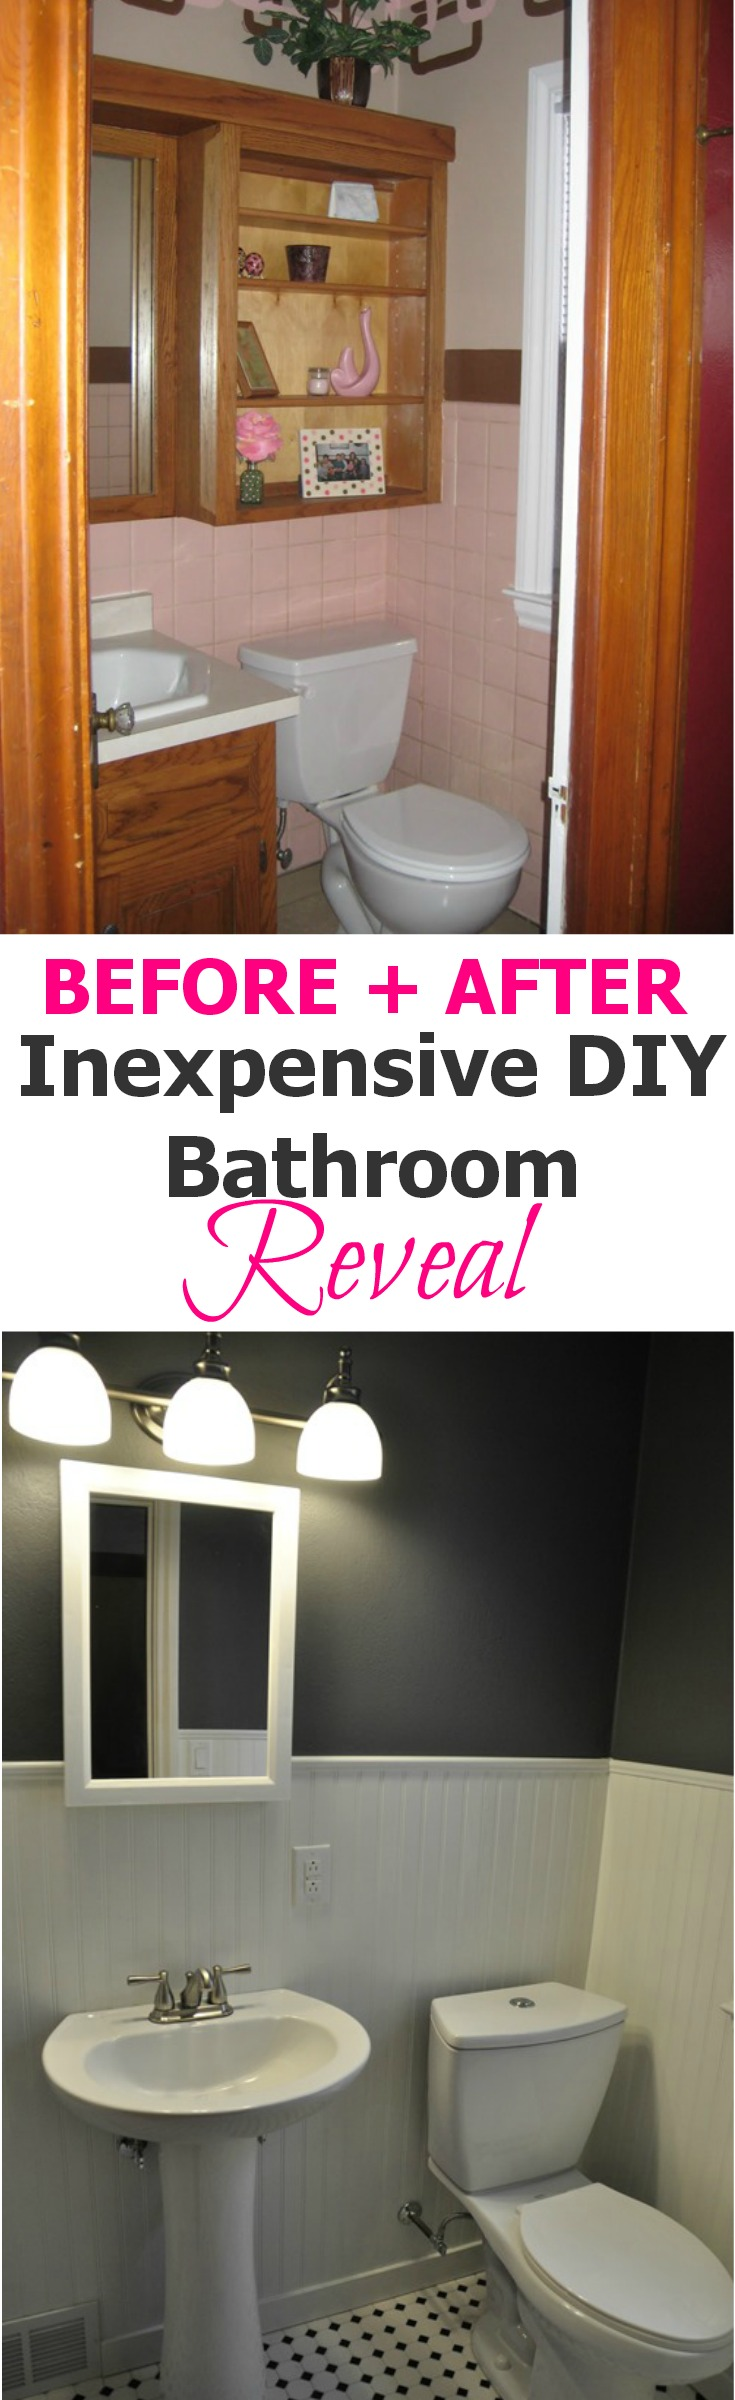 Inexpensive DIY Bathroom Reveal